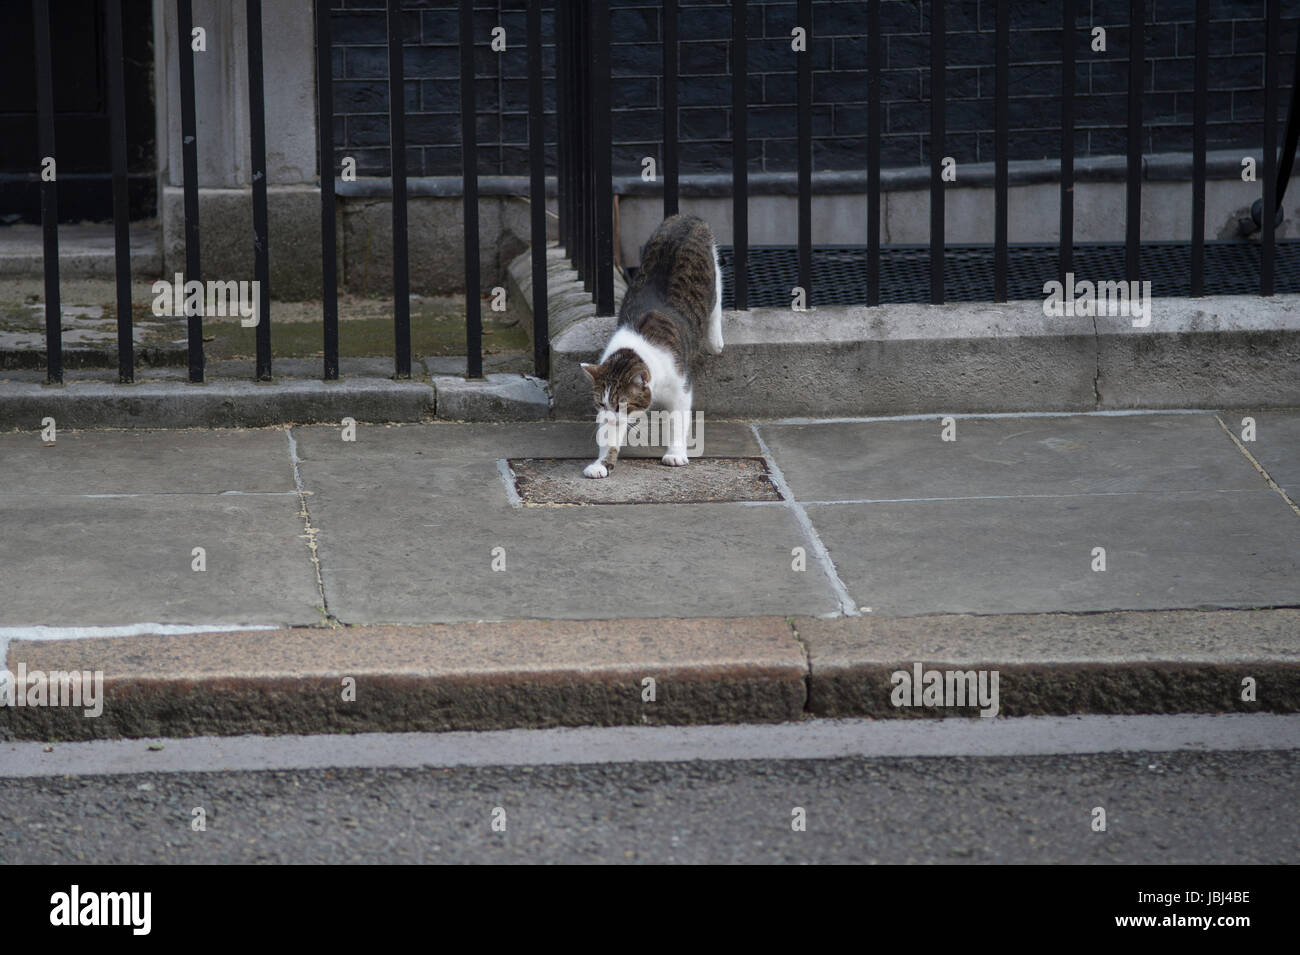 Downing Street, London, UK. 9th June, 2017. Larry the cat outside No 10 Downing Street - Stock Image